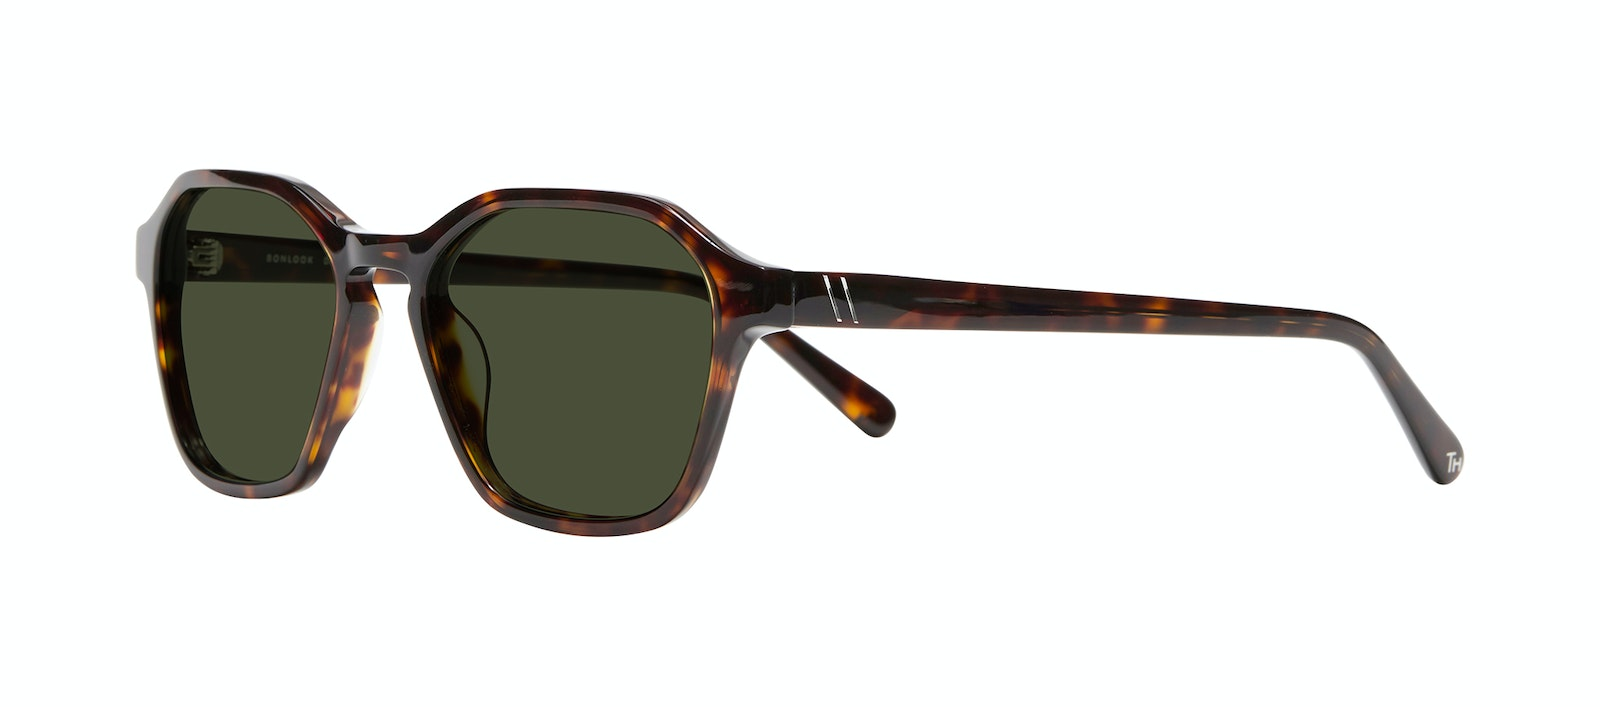 Affordable Fashion Glasses Square Sunglasses Men Birdie Tortoise Tilt